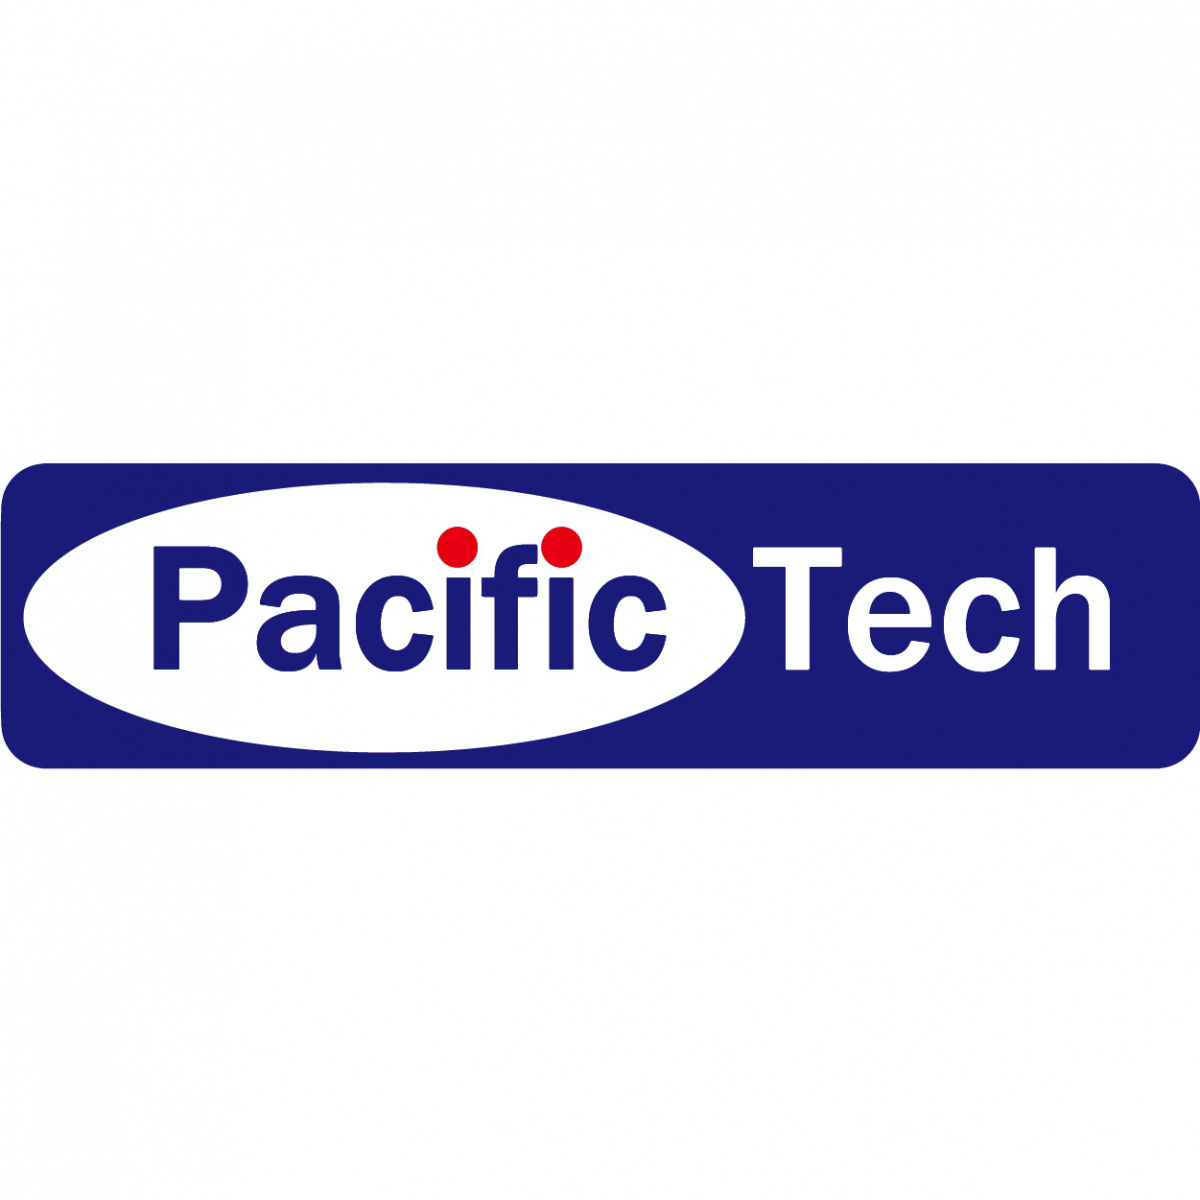 SecureAge Partner Pacific Tech